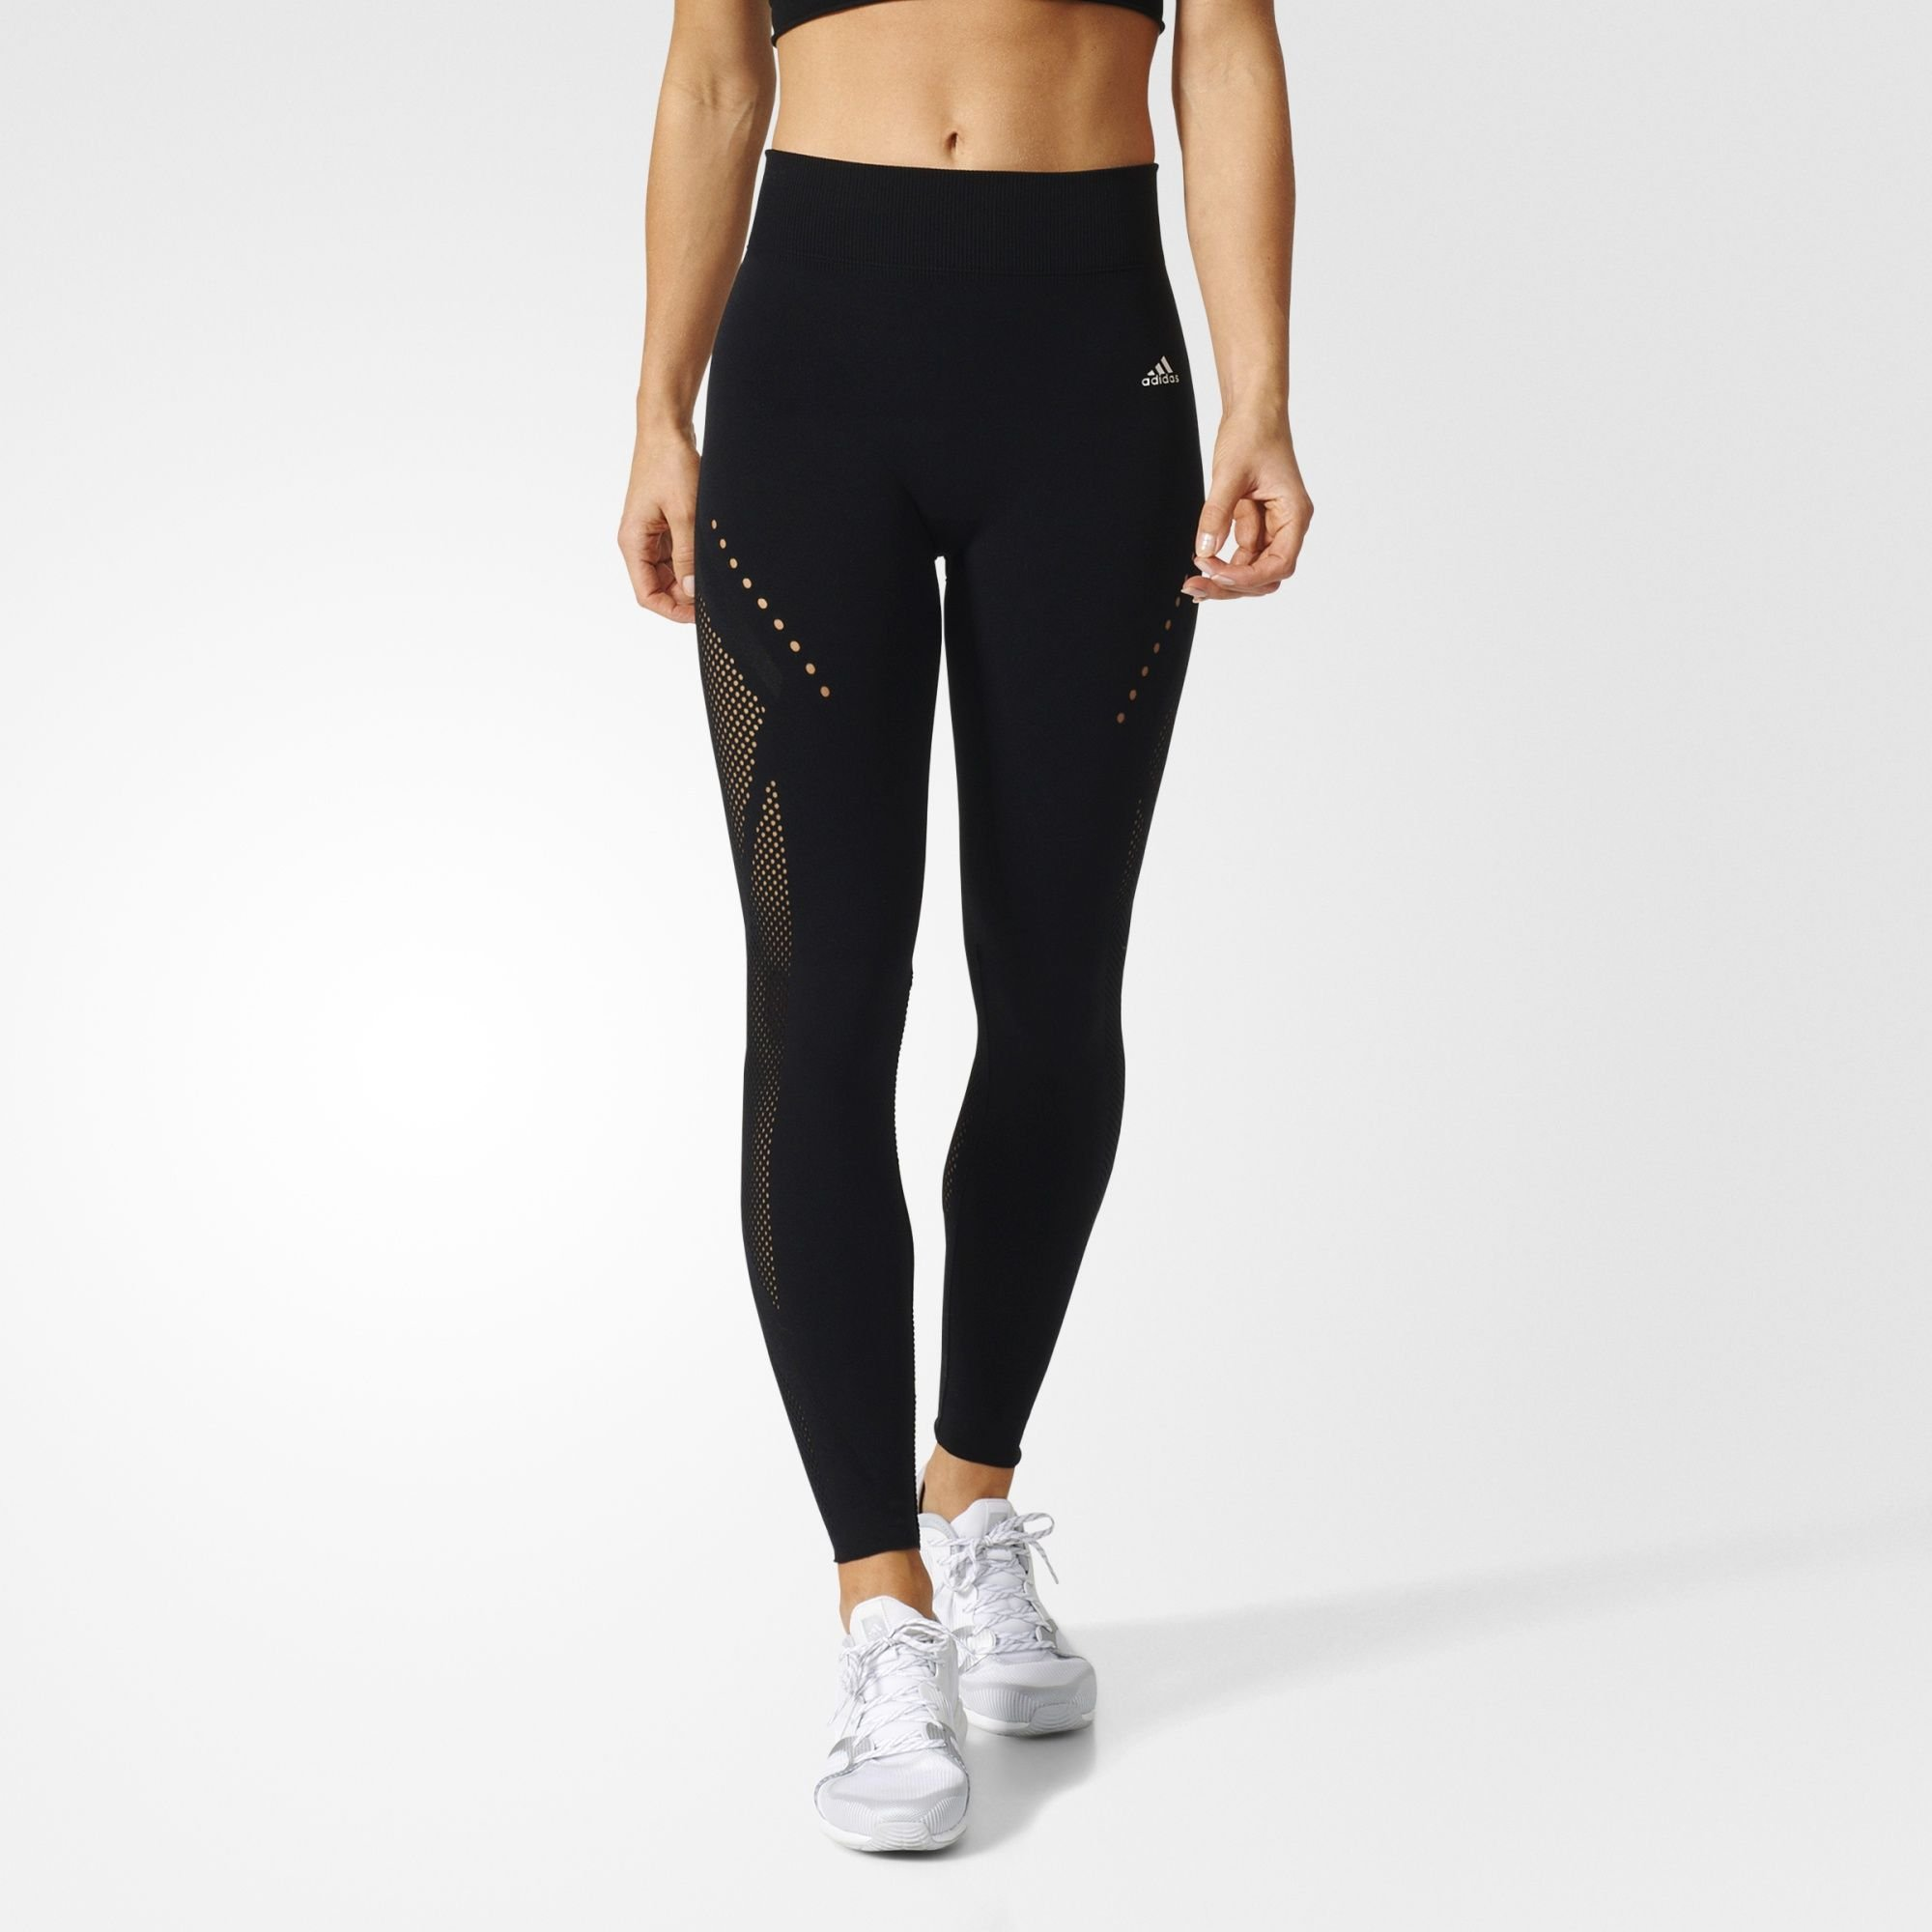 workout leggings share this link aqpdjvt